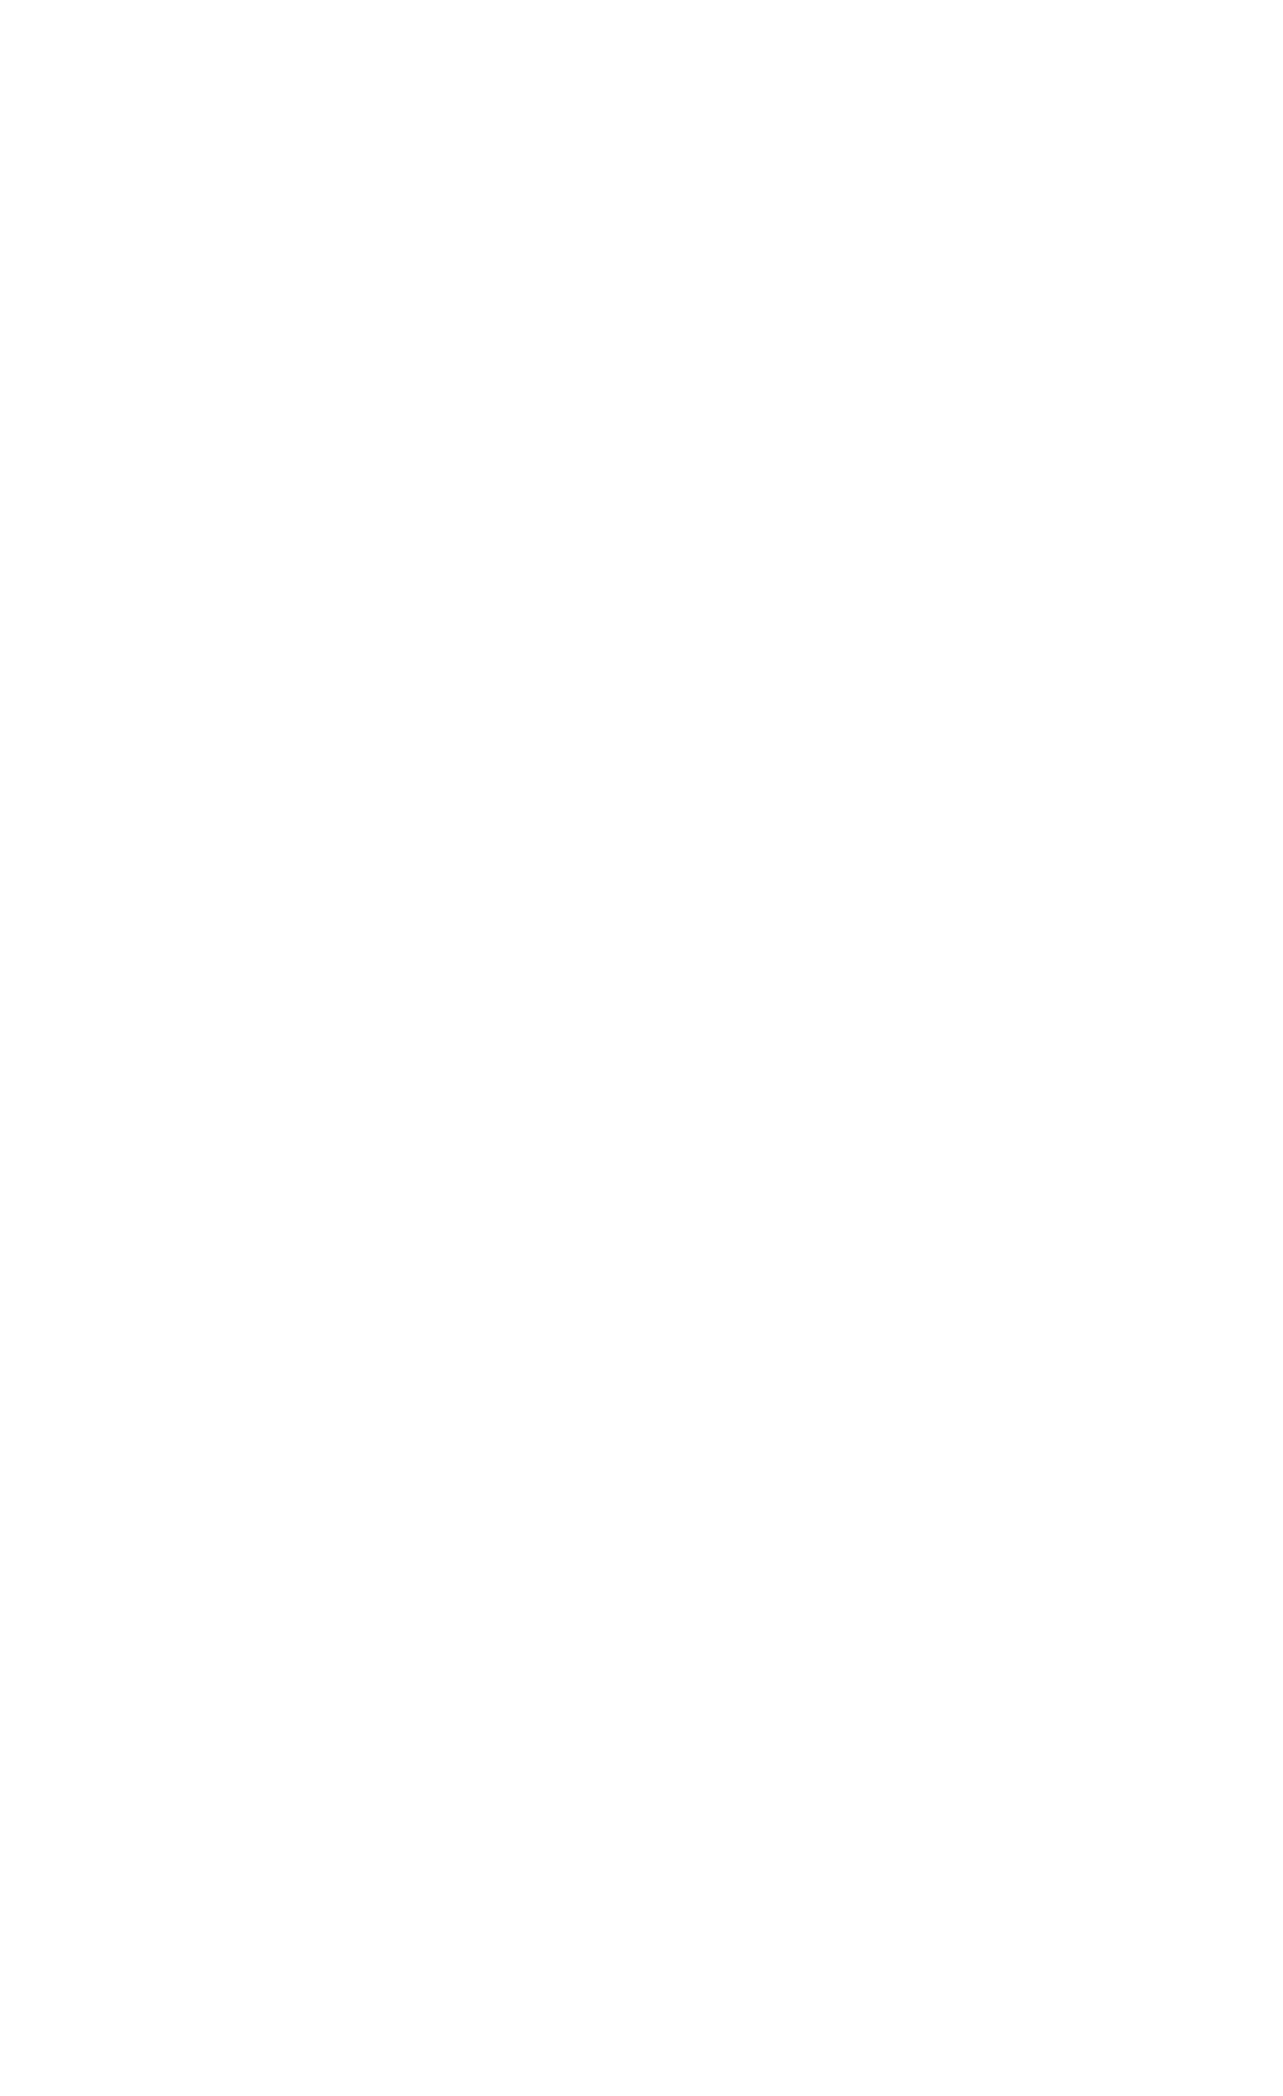 Waterboy Pool Service